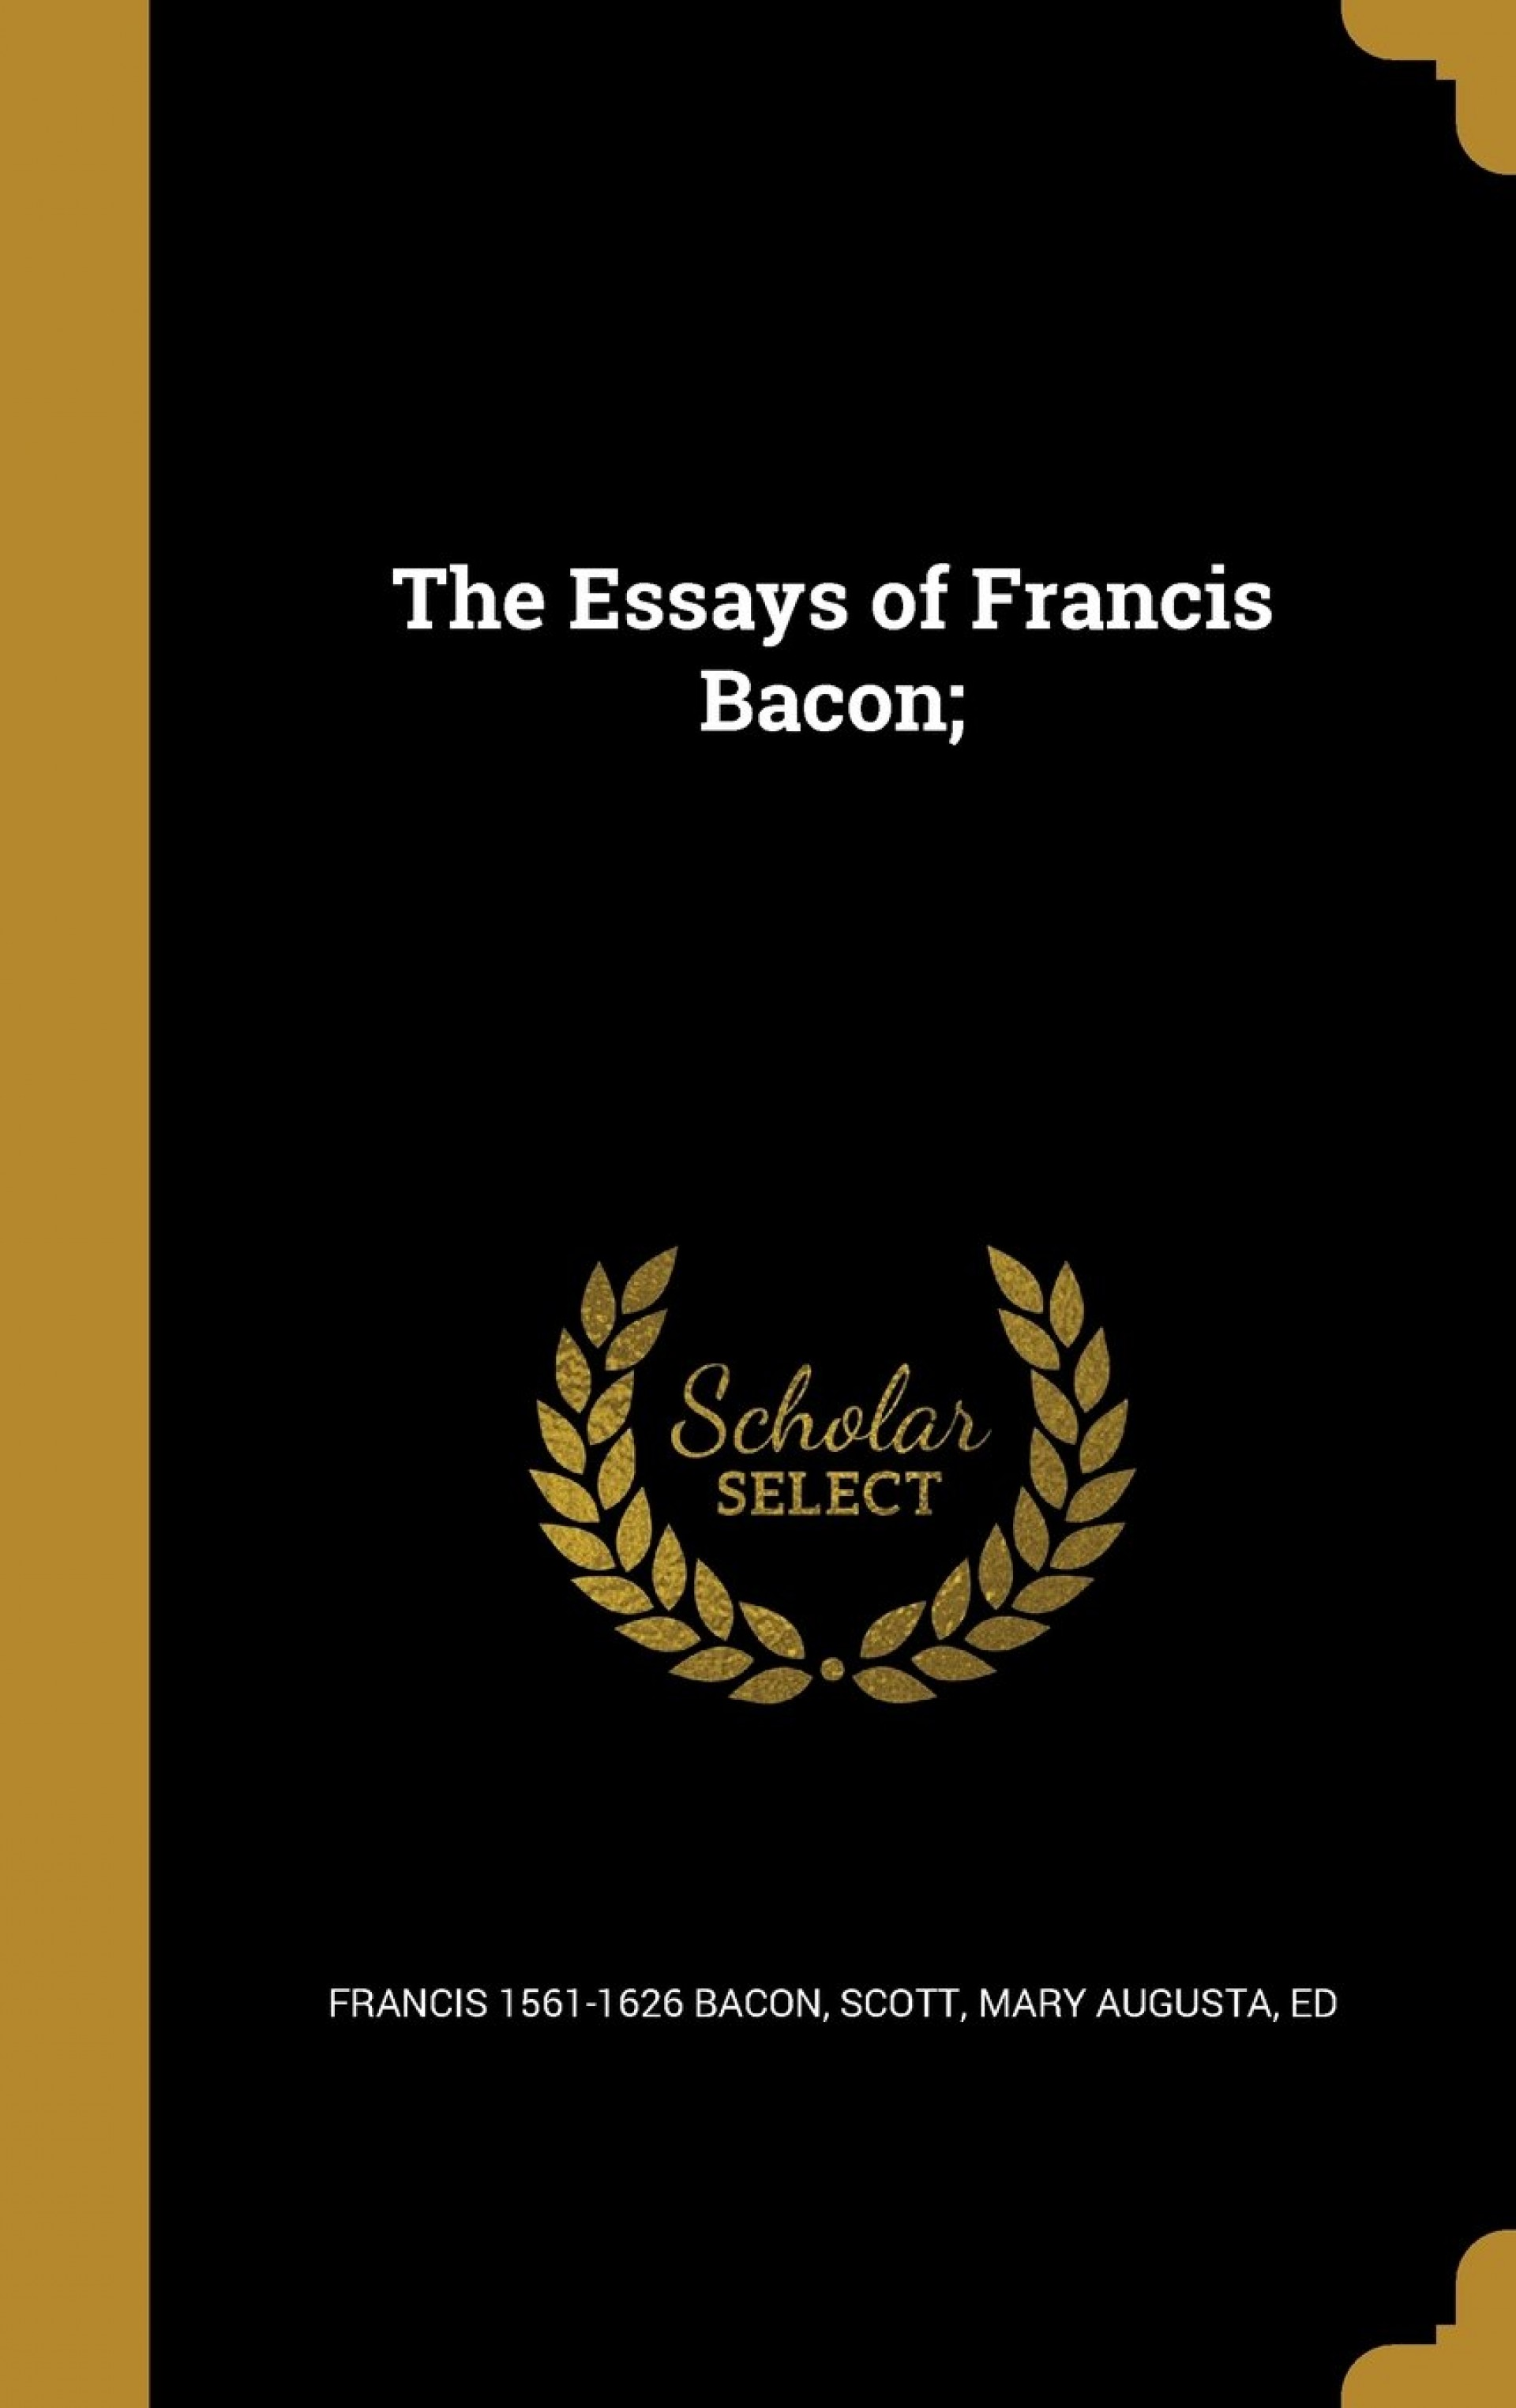 023 Francis Bacon Essays 513h2afvlgl Essay Awesome Analysis Pdf Of Truth Download Critical Appreciation Bacon's 1920